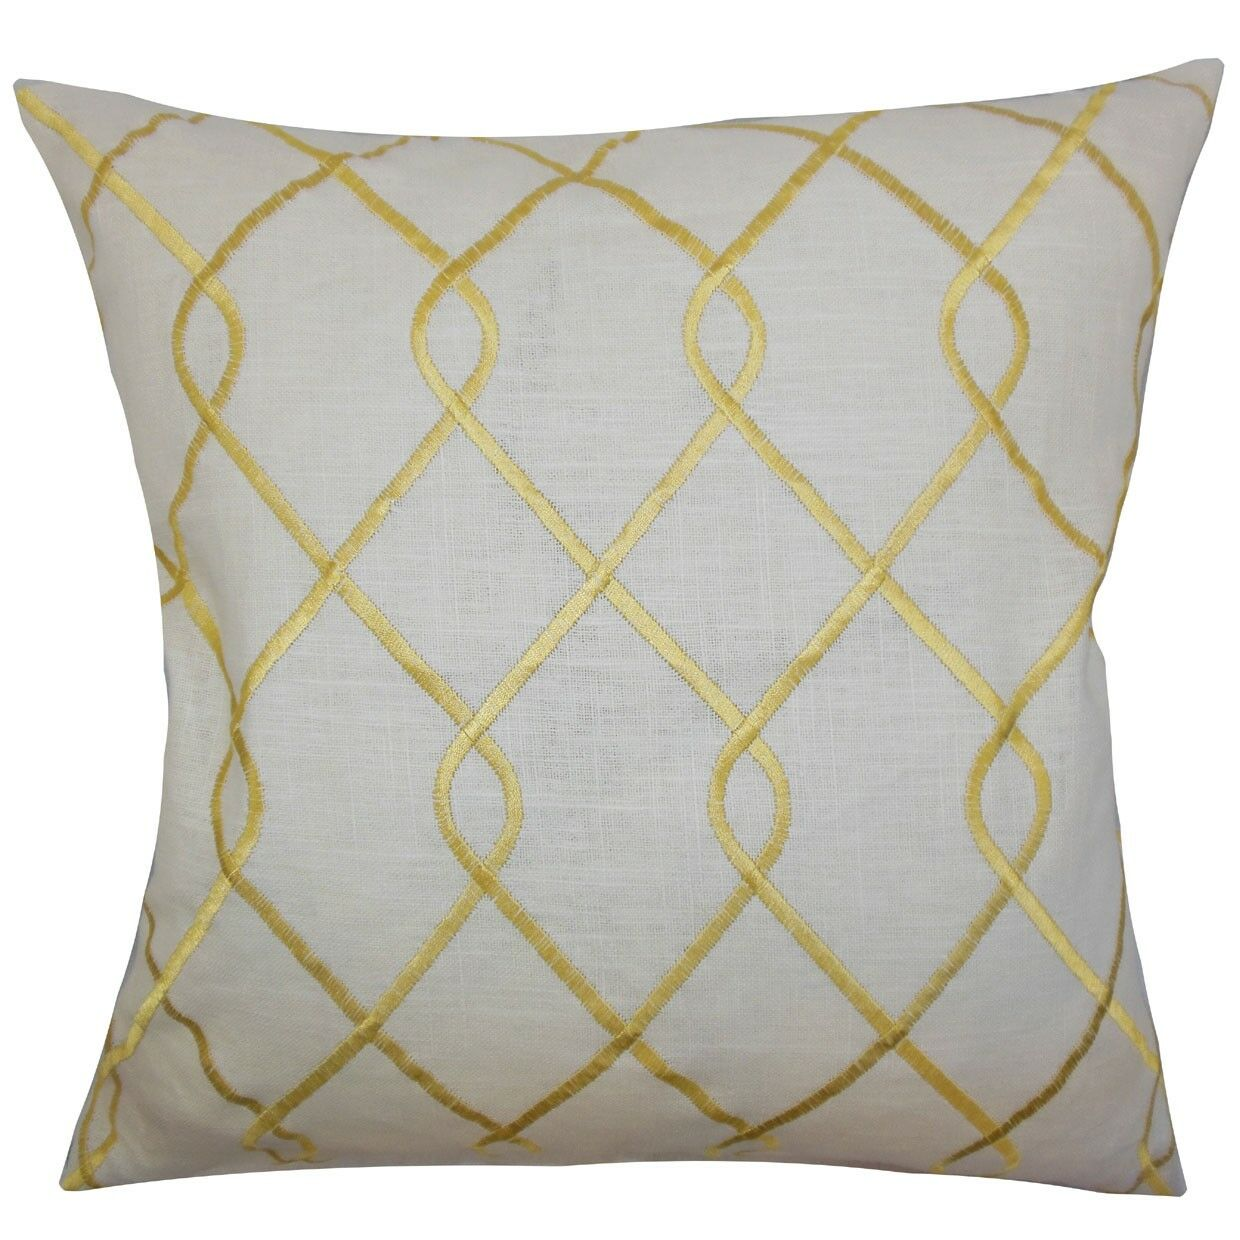 Jolo Geometric Bedding Sham Size: Euro, Color: Yellow